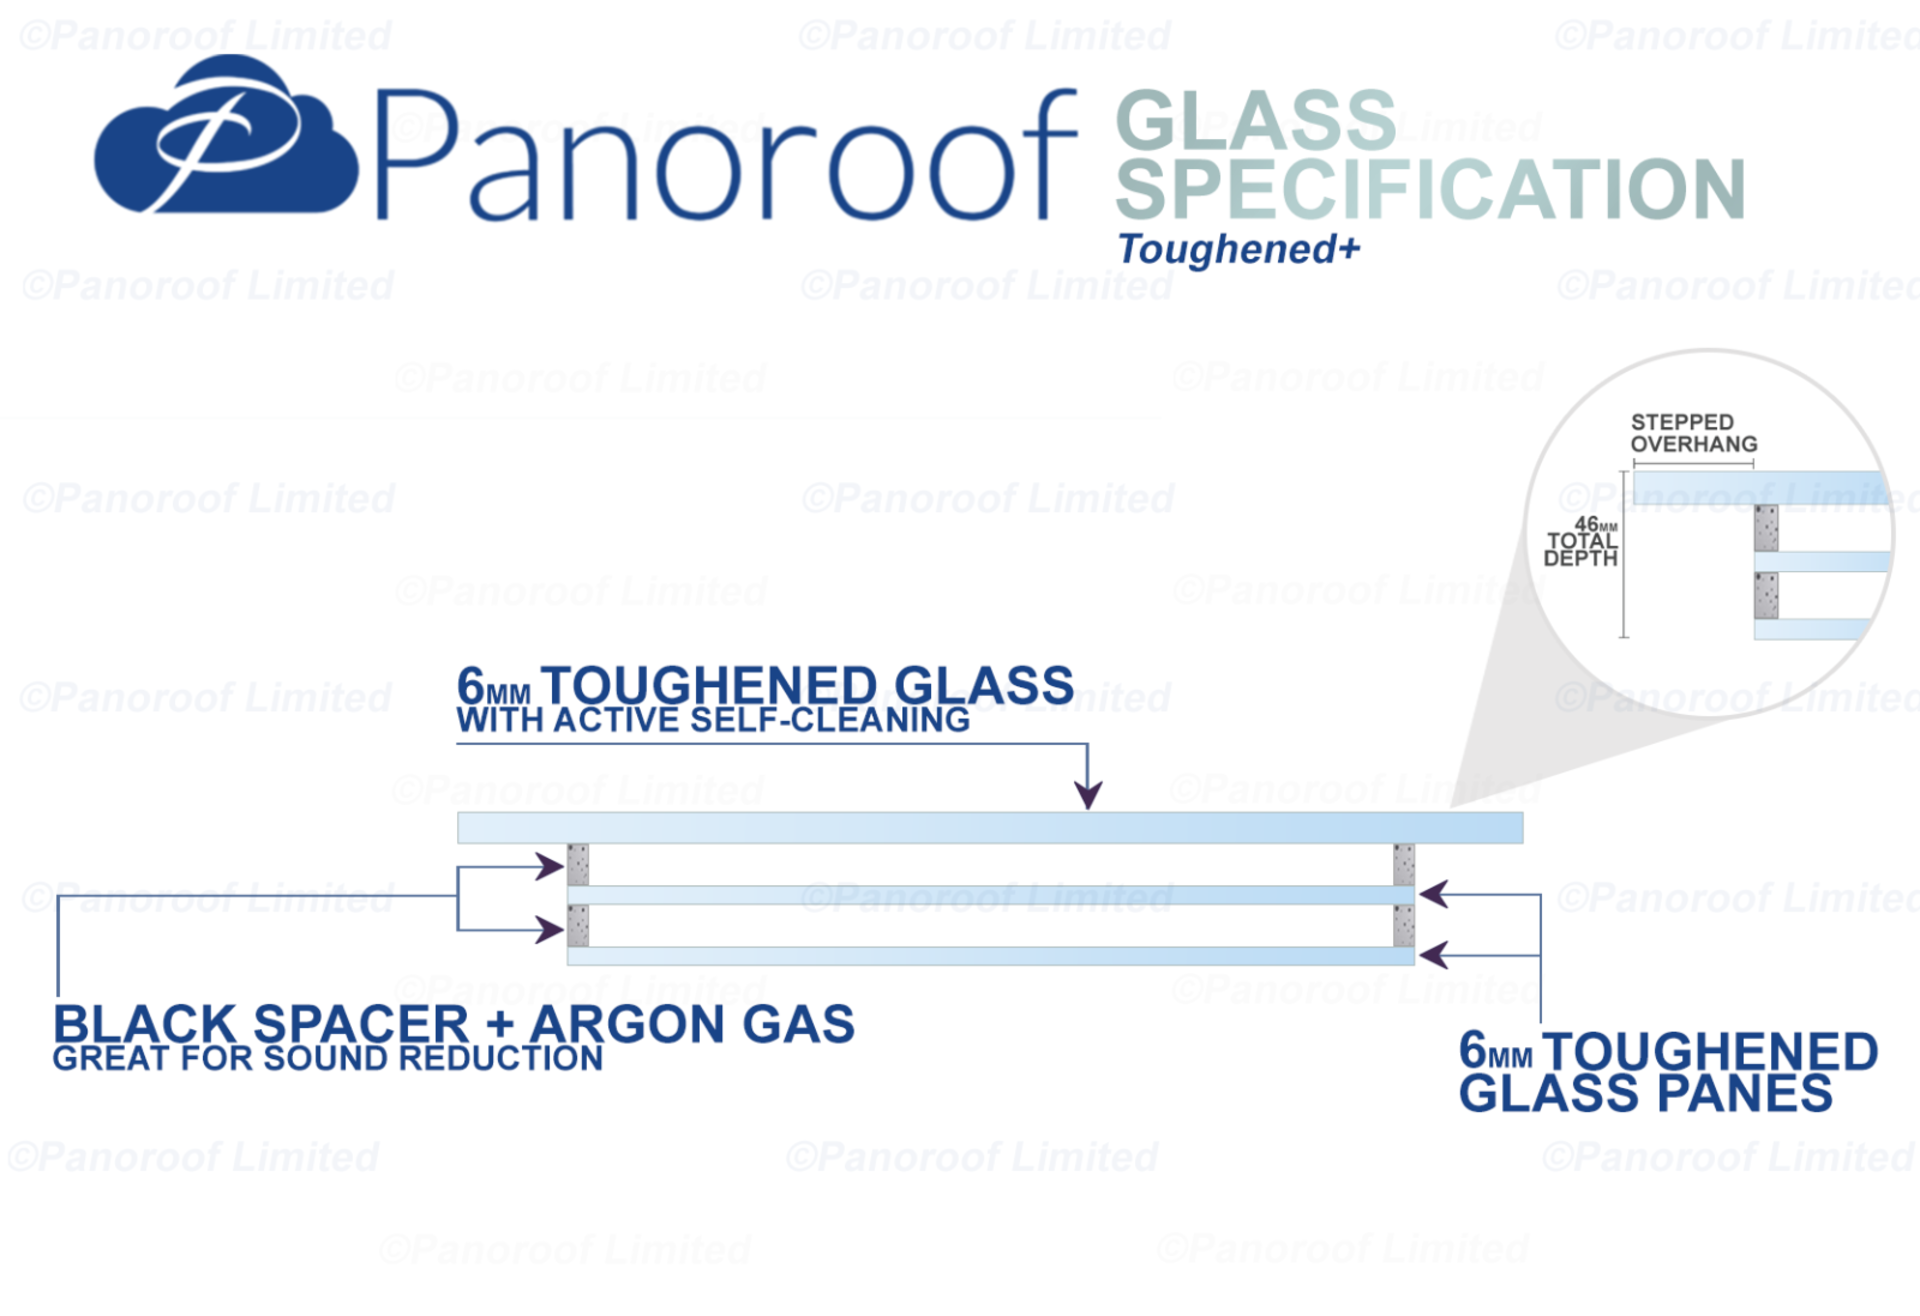 Panoroof 2000x3000mm (inside Size Visable glass area) Seamless Glass Skylight Flat Roof Rooflight - Image 5 of 6